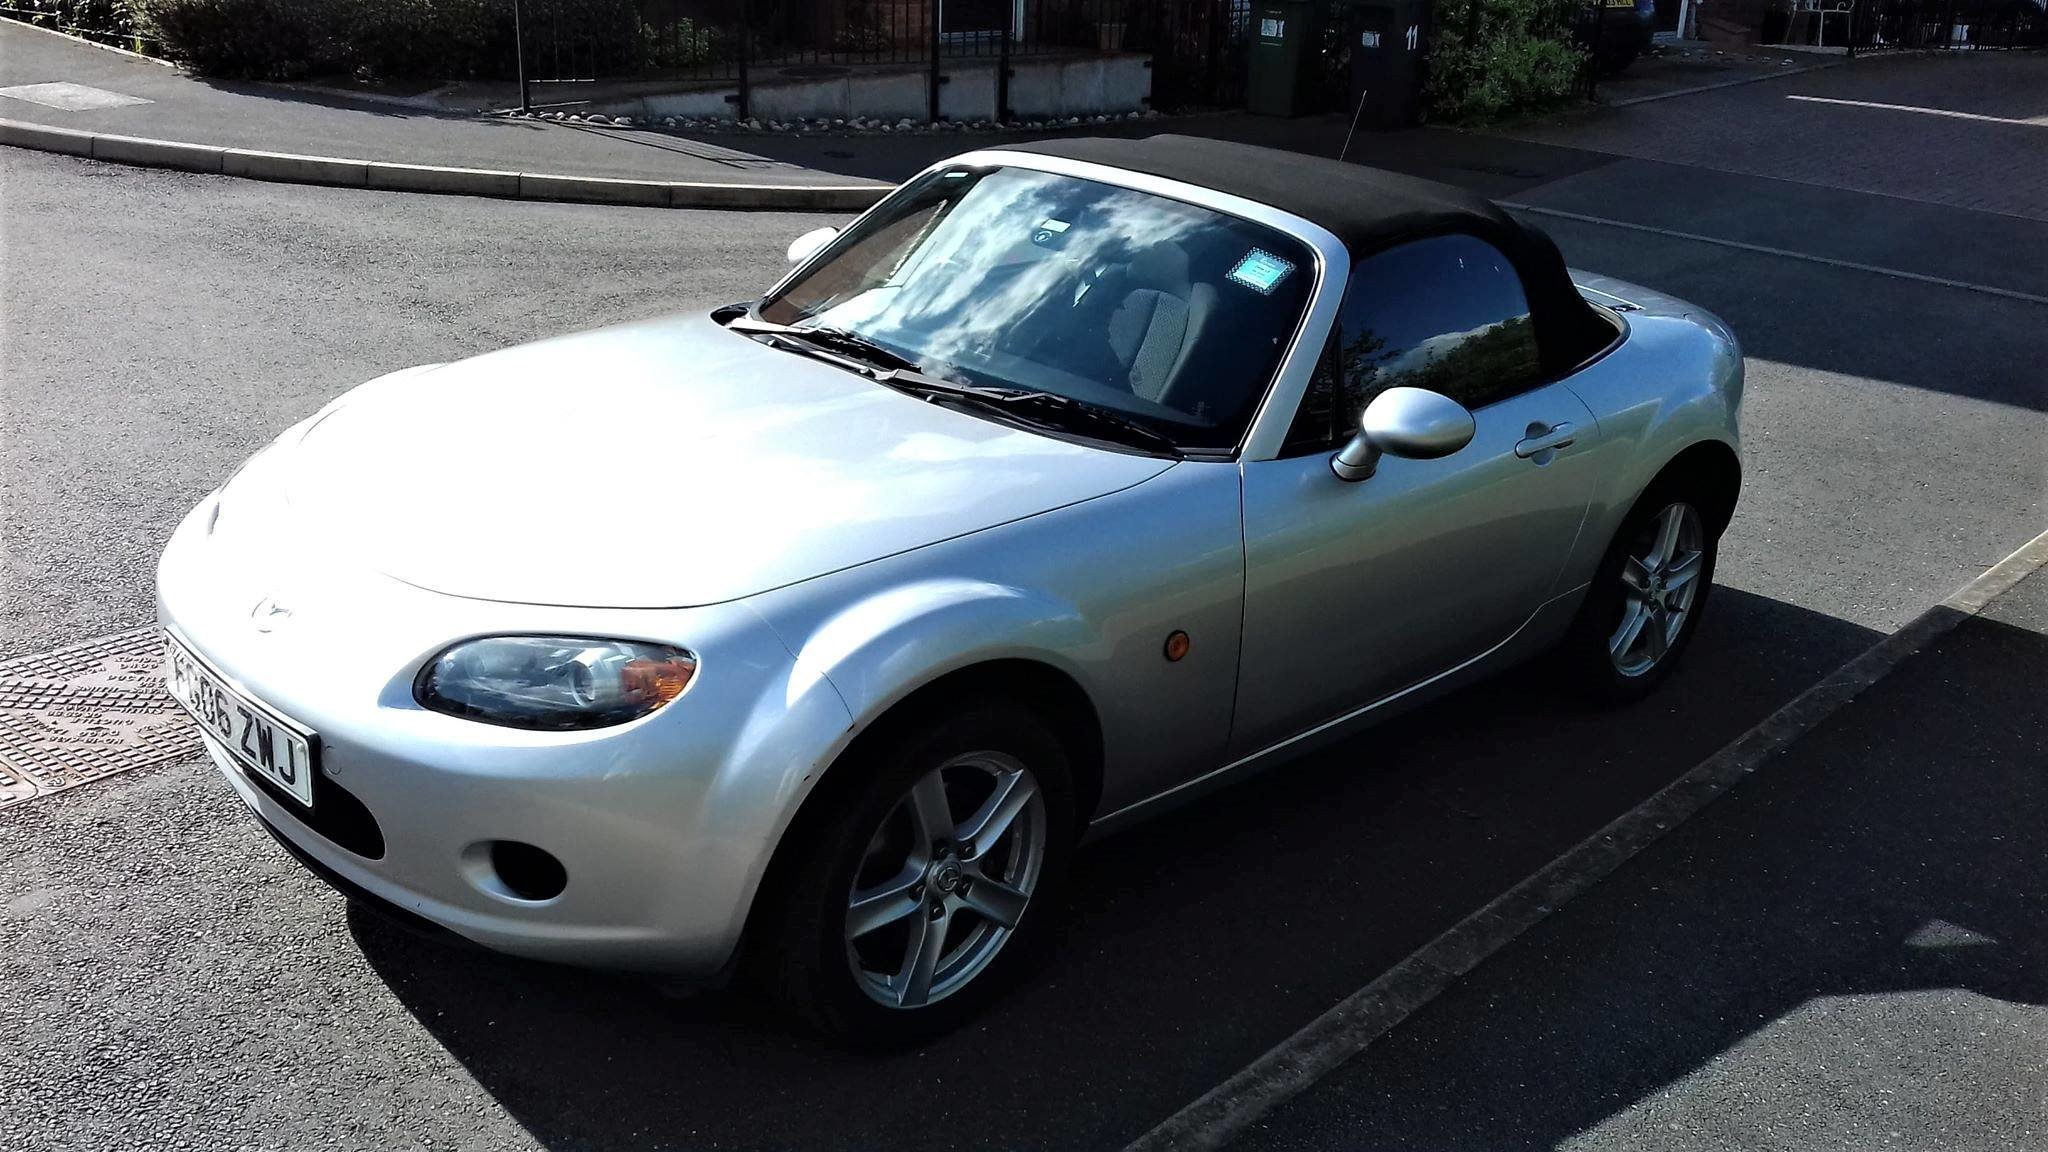 2006 Mazda MX-5 1.8 option pack For Sale (picture 1 of 6)